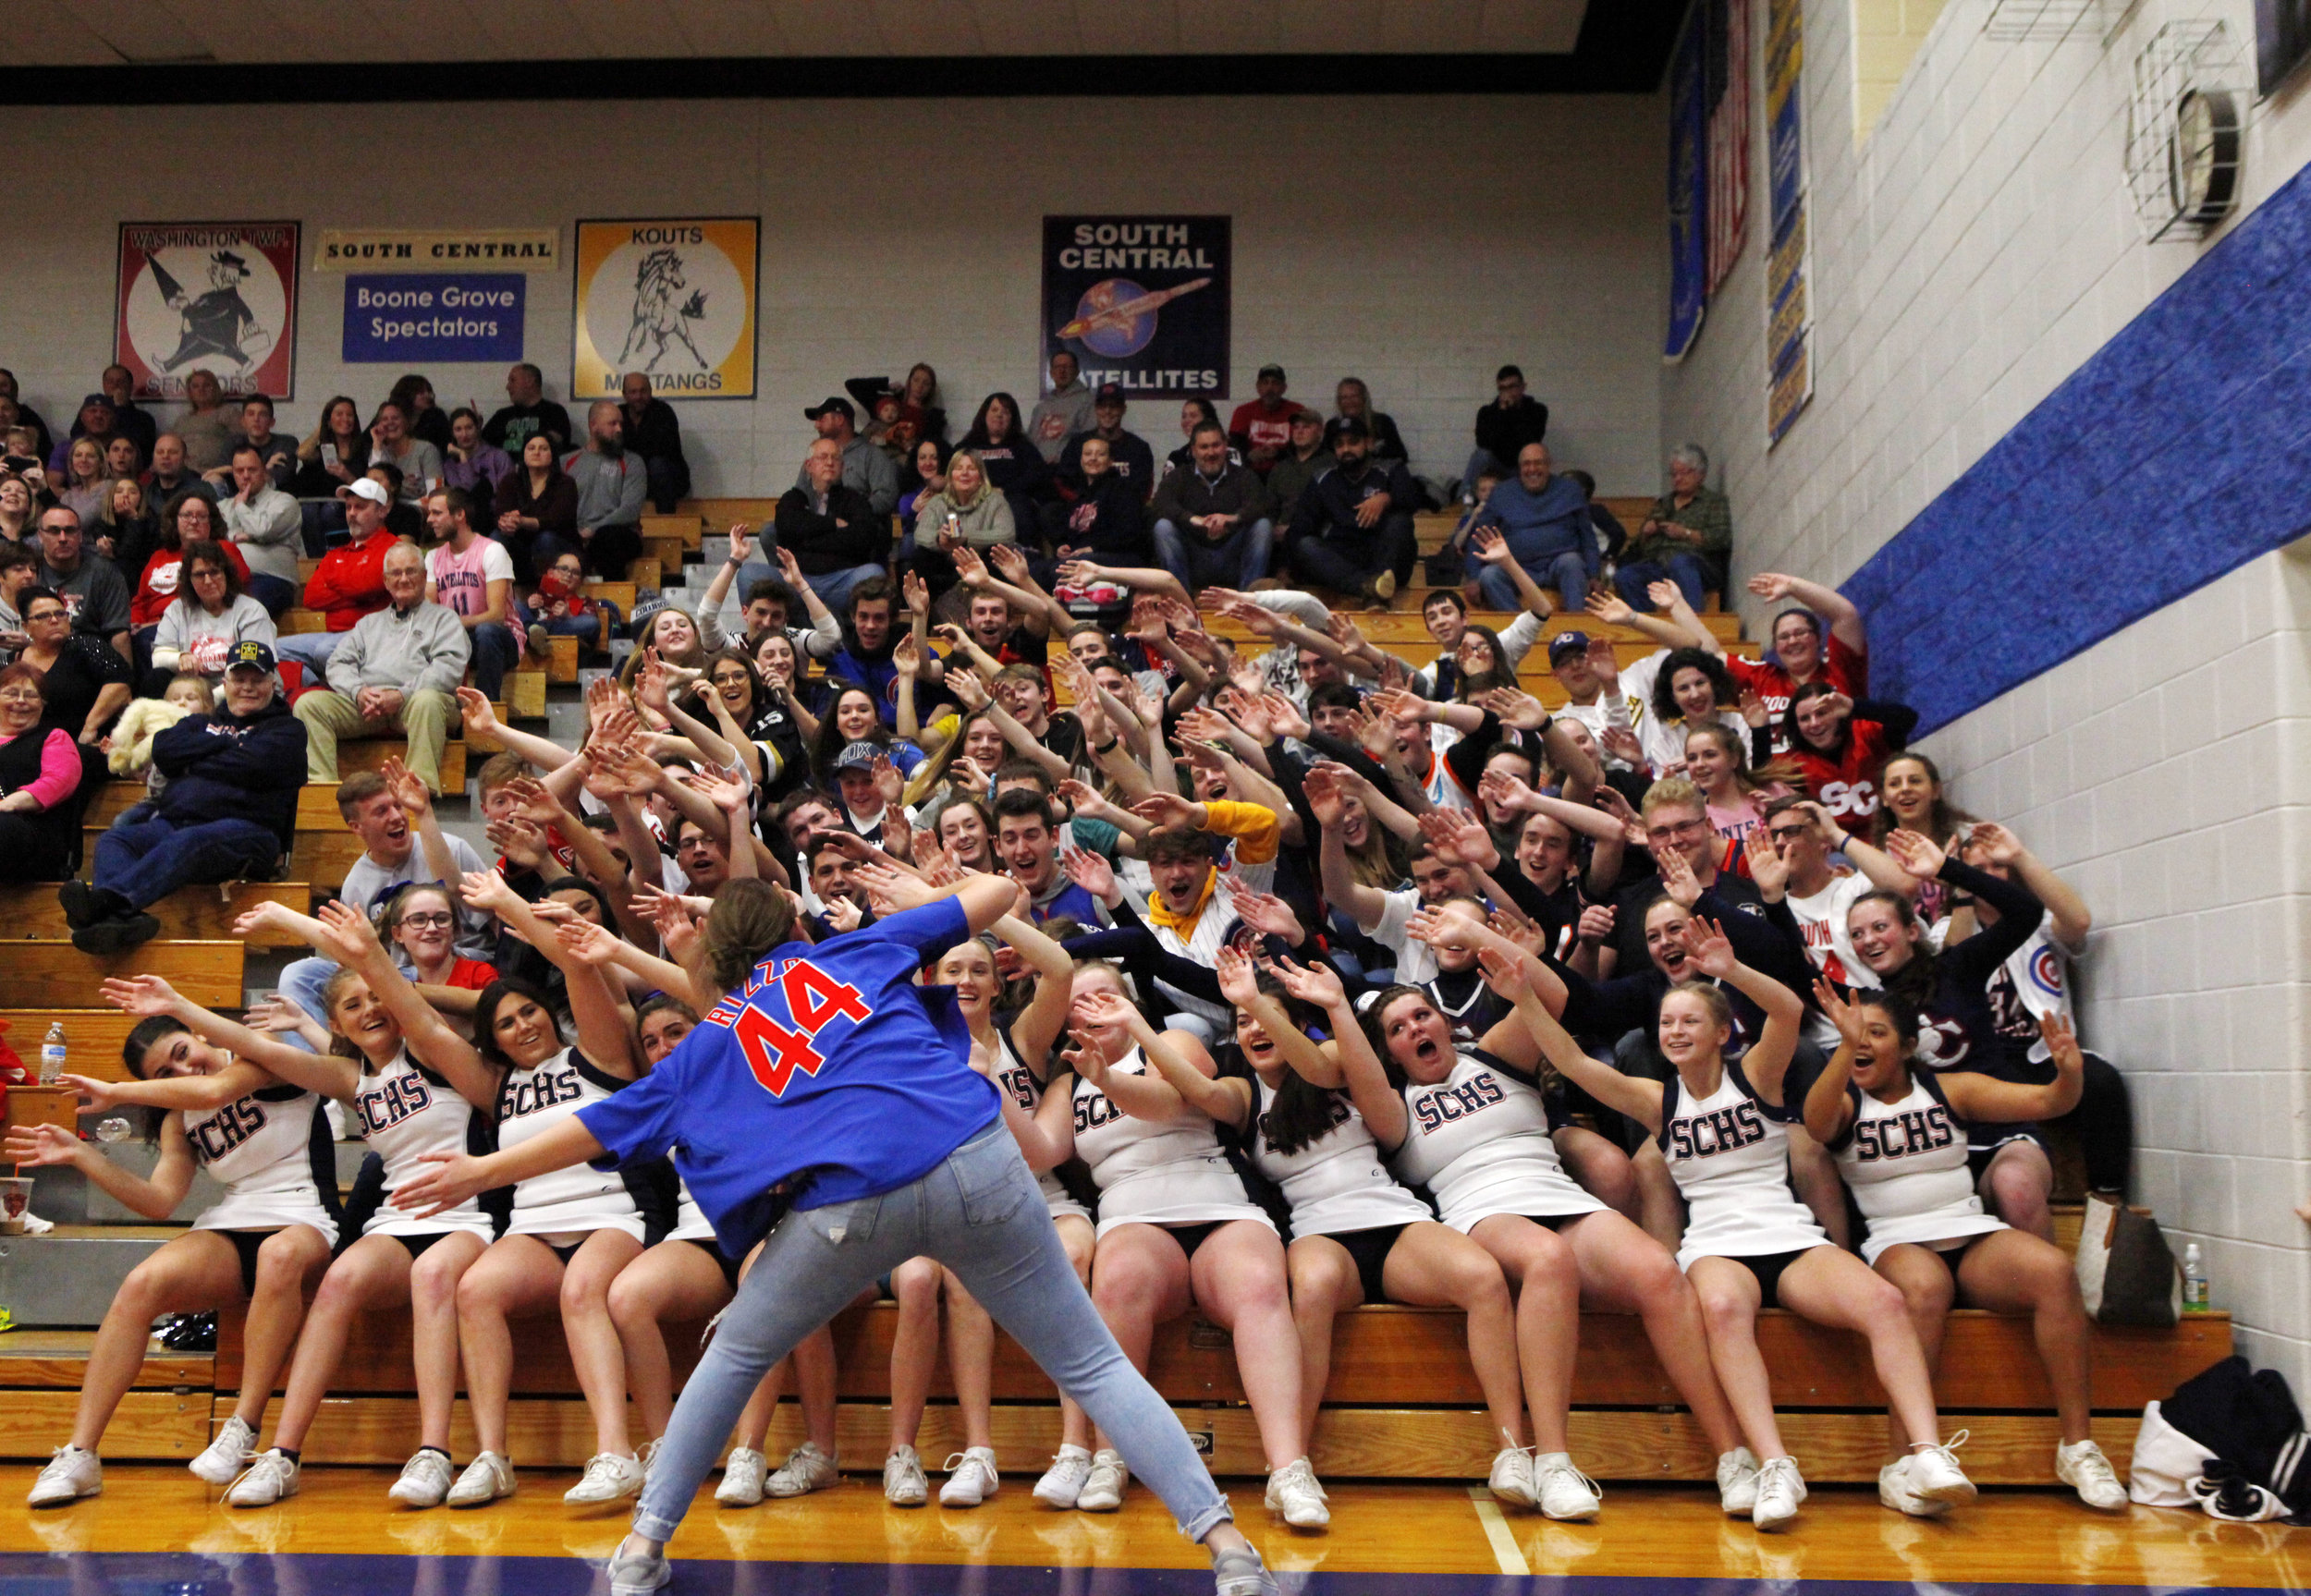 South Central's student section is led in the bus driver cheer during the PCC tourney semifinal game against Kouts at Boone Grove High School.